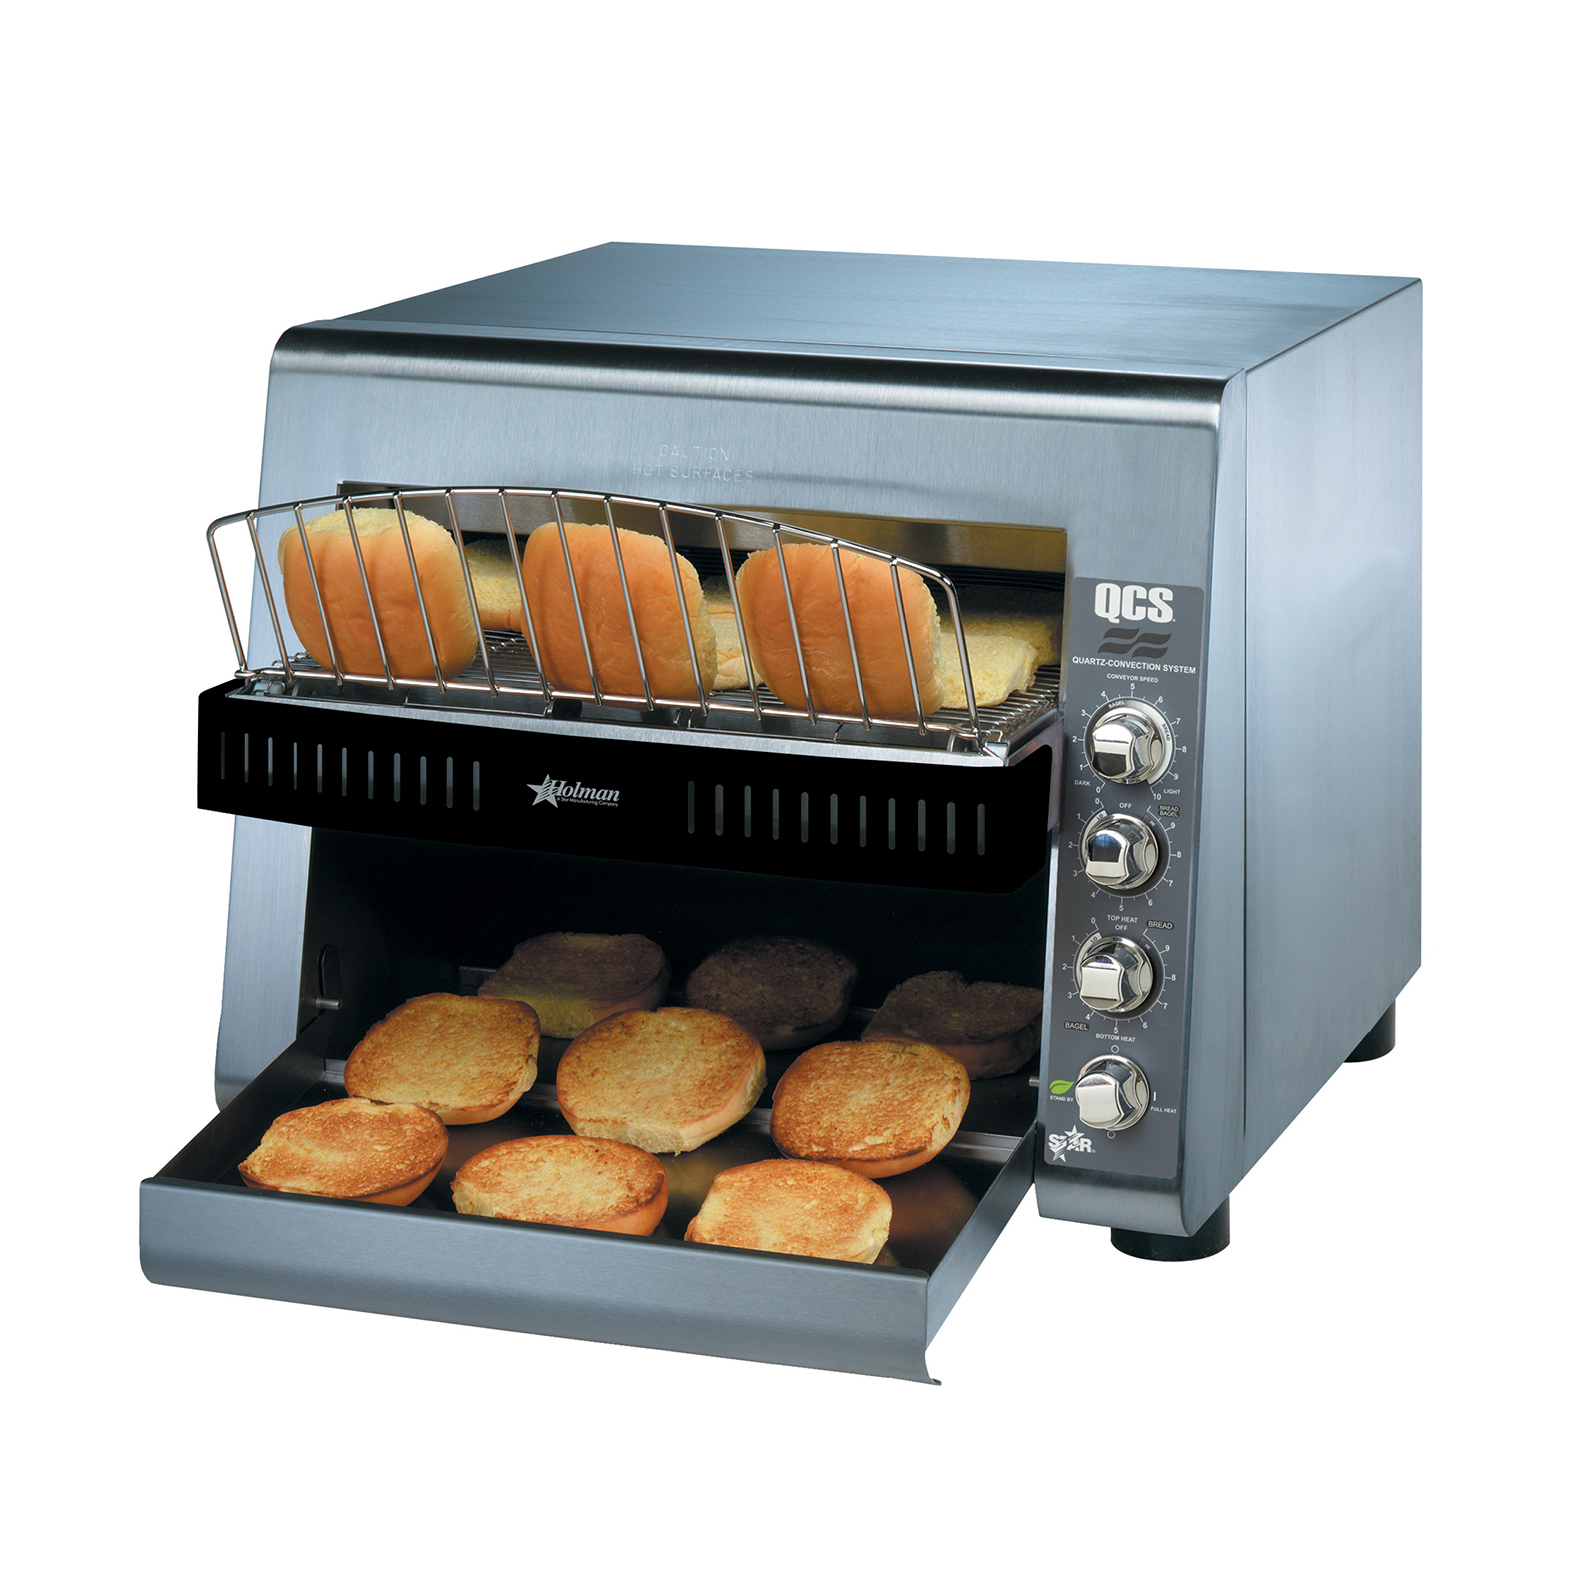 Star QCS3-1400BH toaster, conveyor type